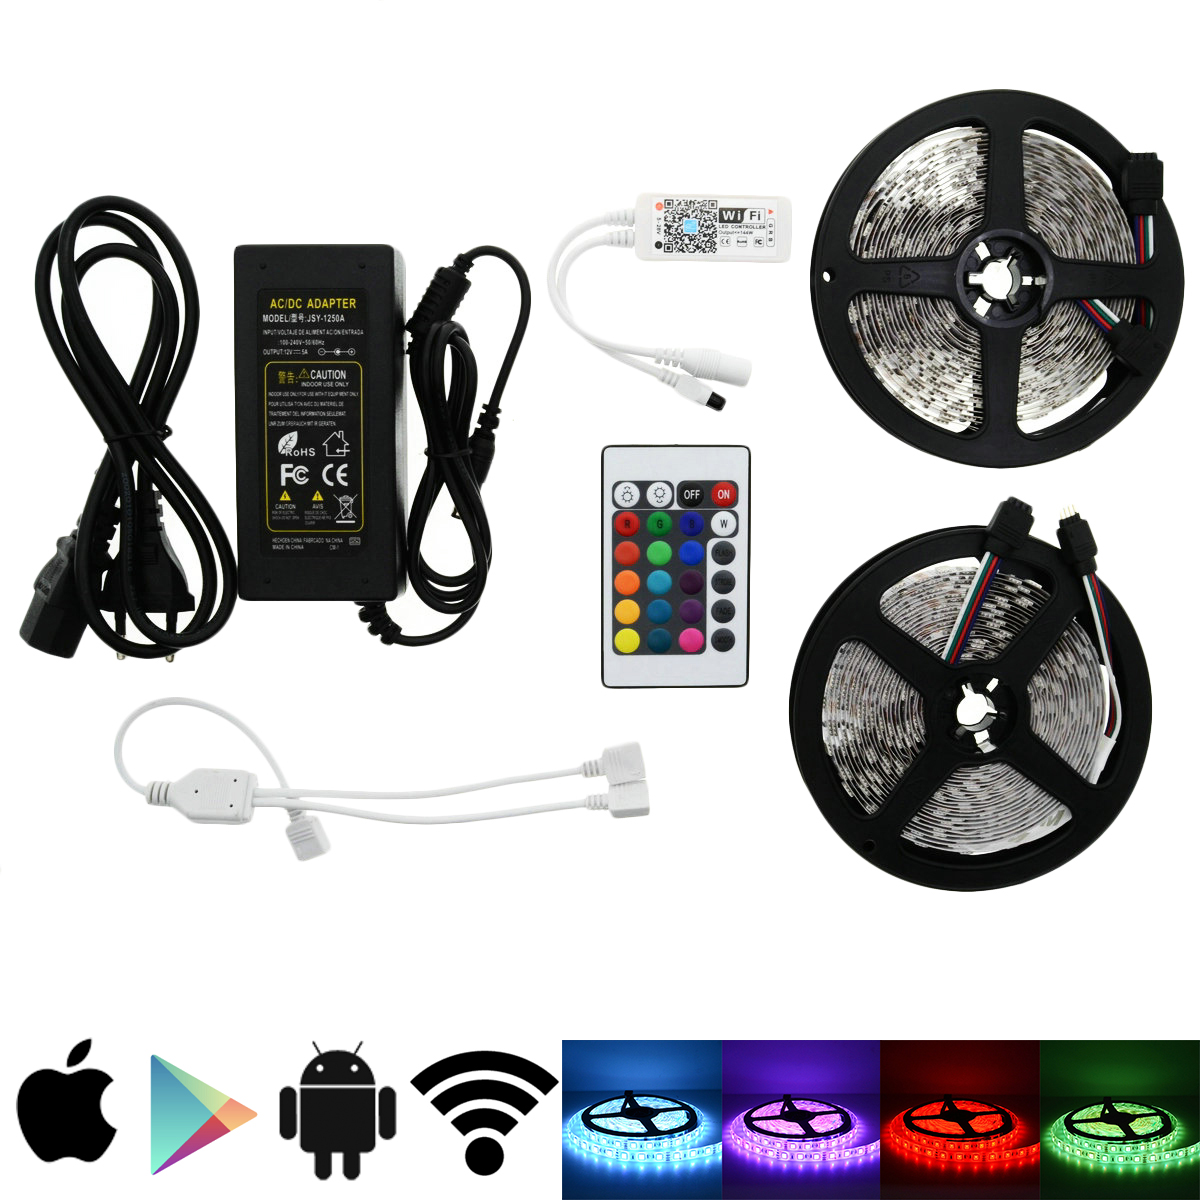 5M 10M 15M Wifi Controller 5050 RGB LED Strip light lamp Waterproof IP20 neon Flexible Tape diode ribbon DC 12V adapter set